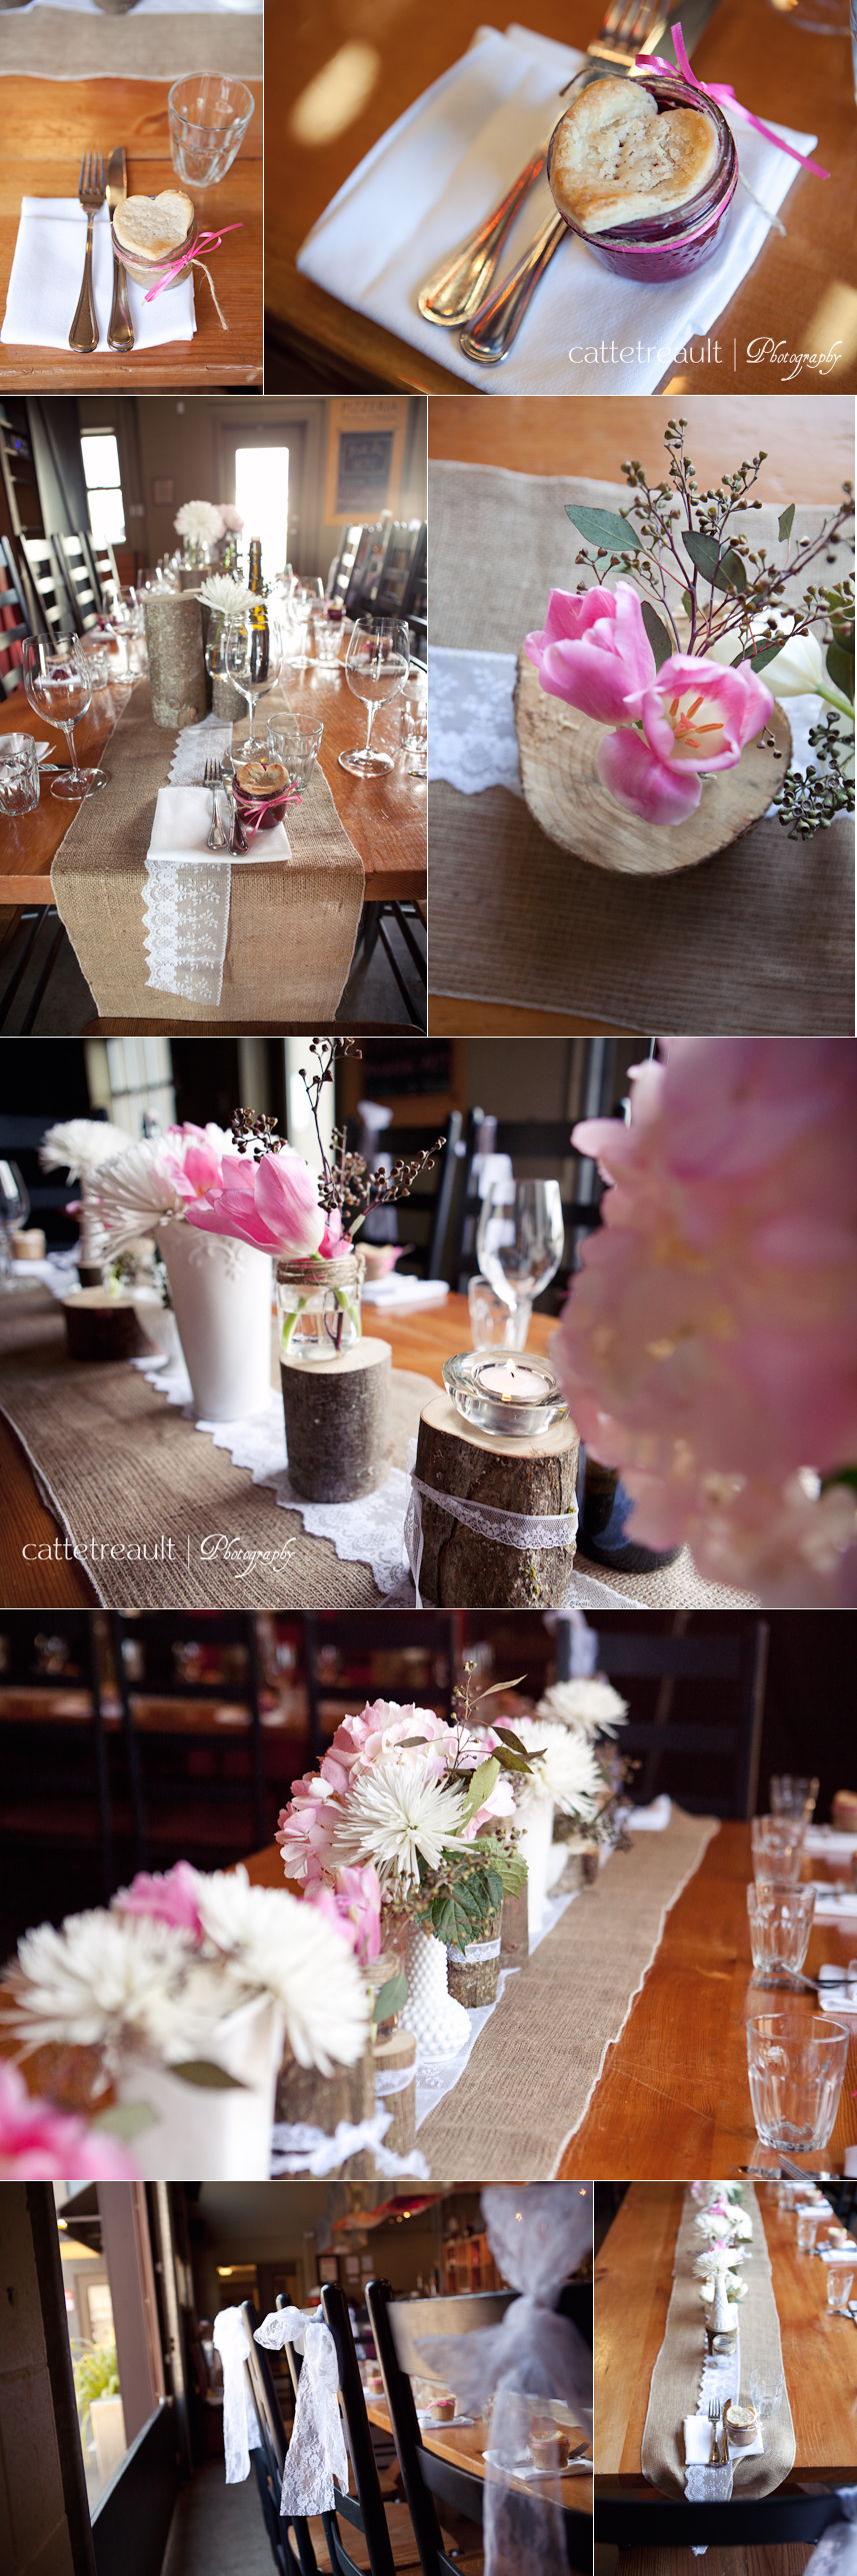 Another stunning example of how to decorate PPS Bridge for your wedding.